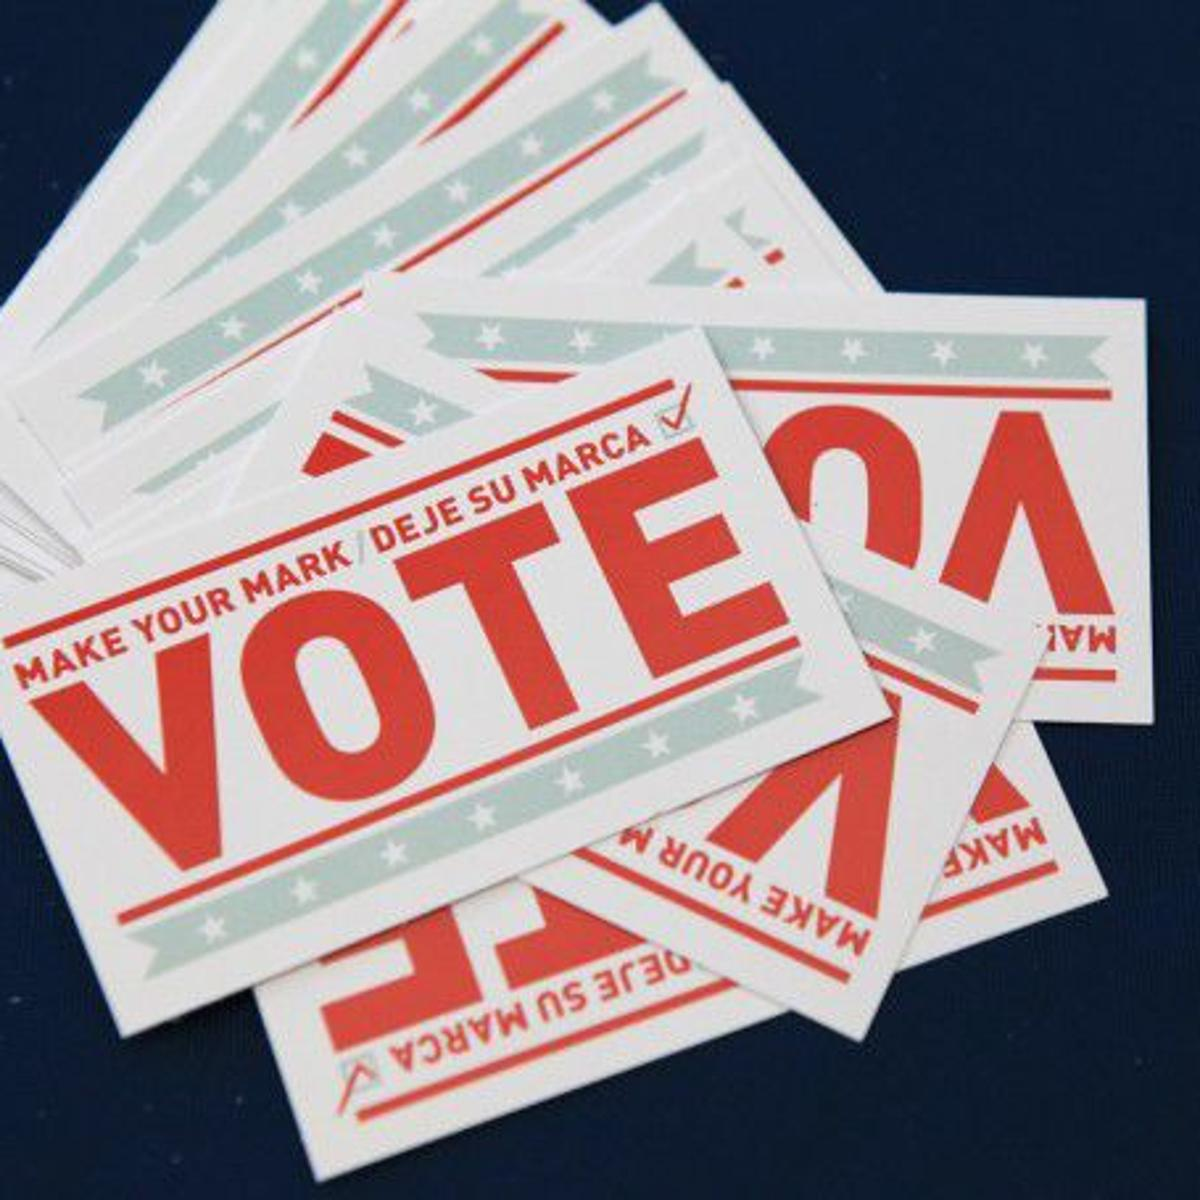 Should Hoosiers who cast absentee ballots before dying have